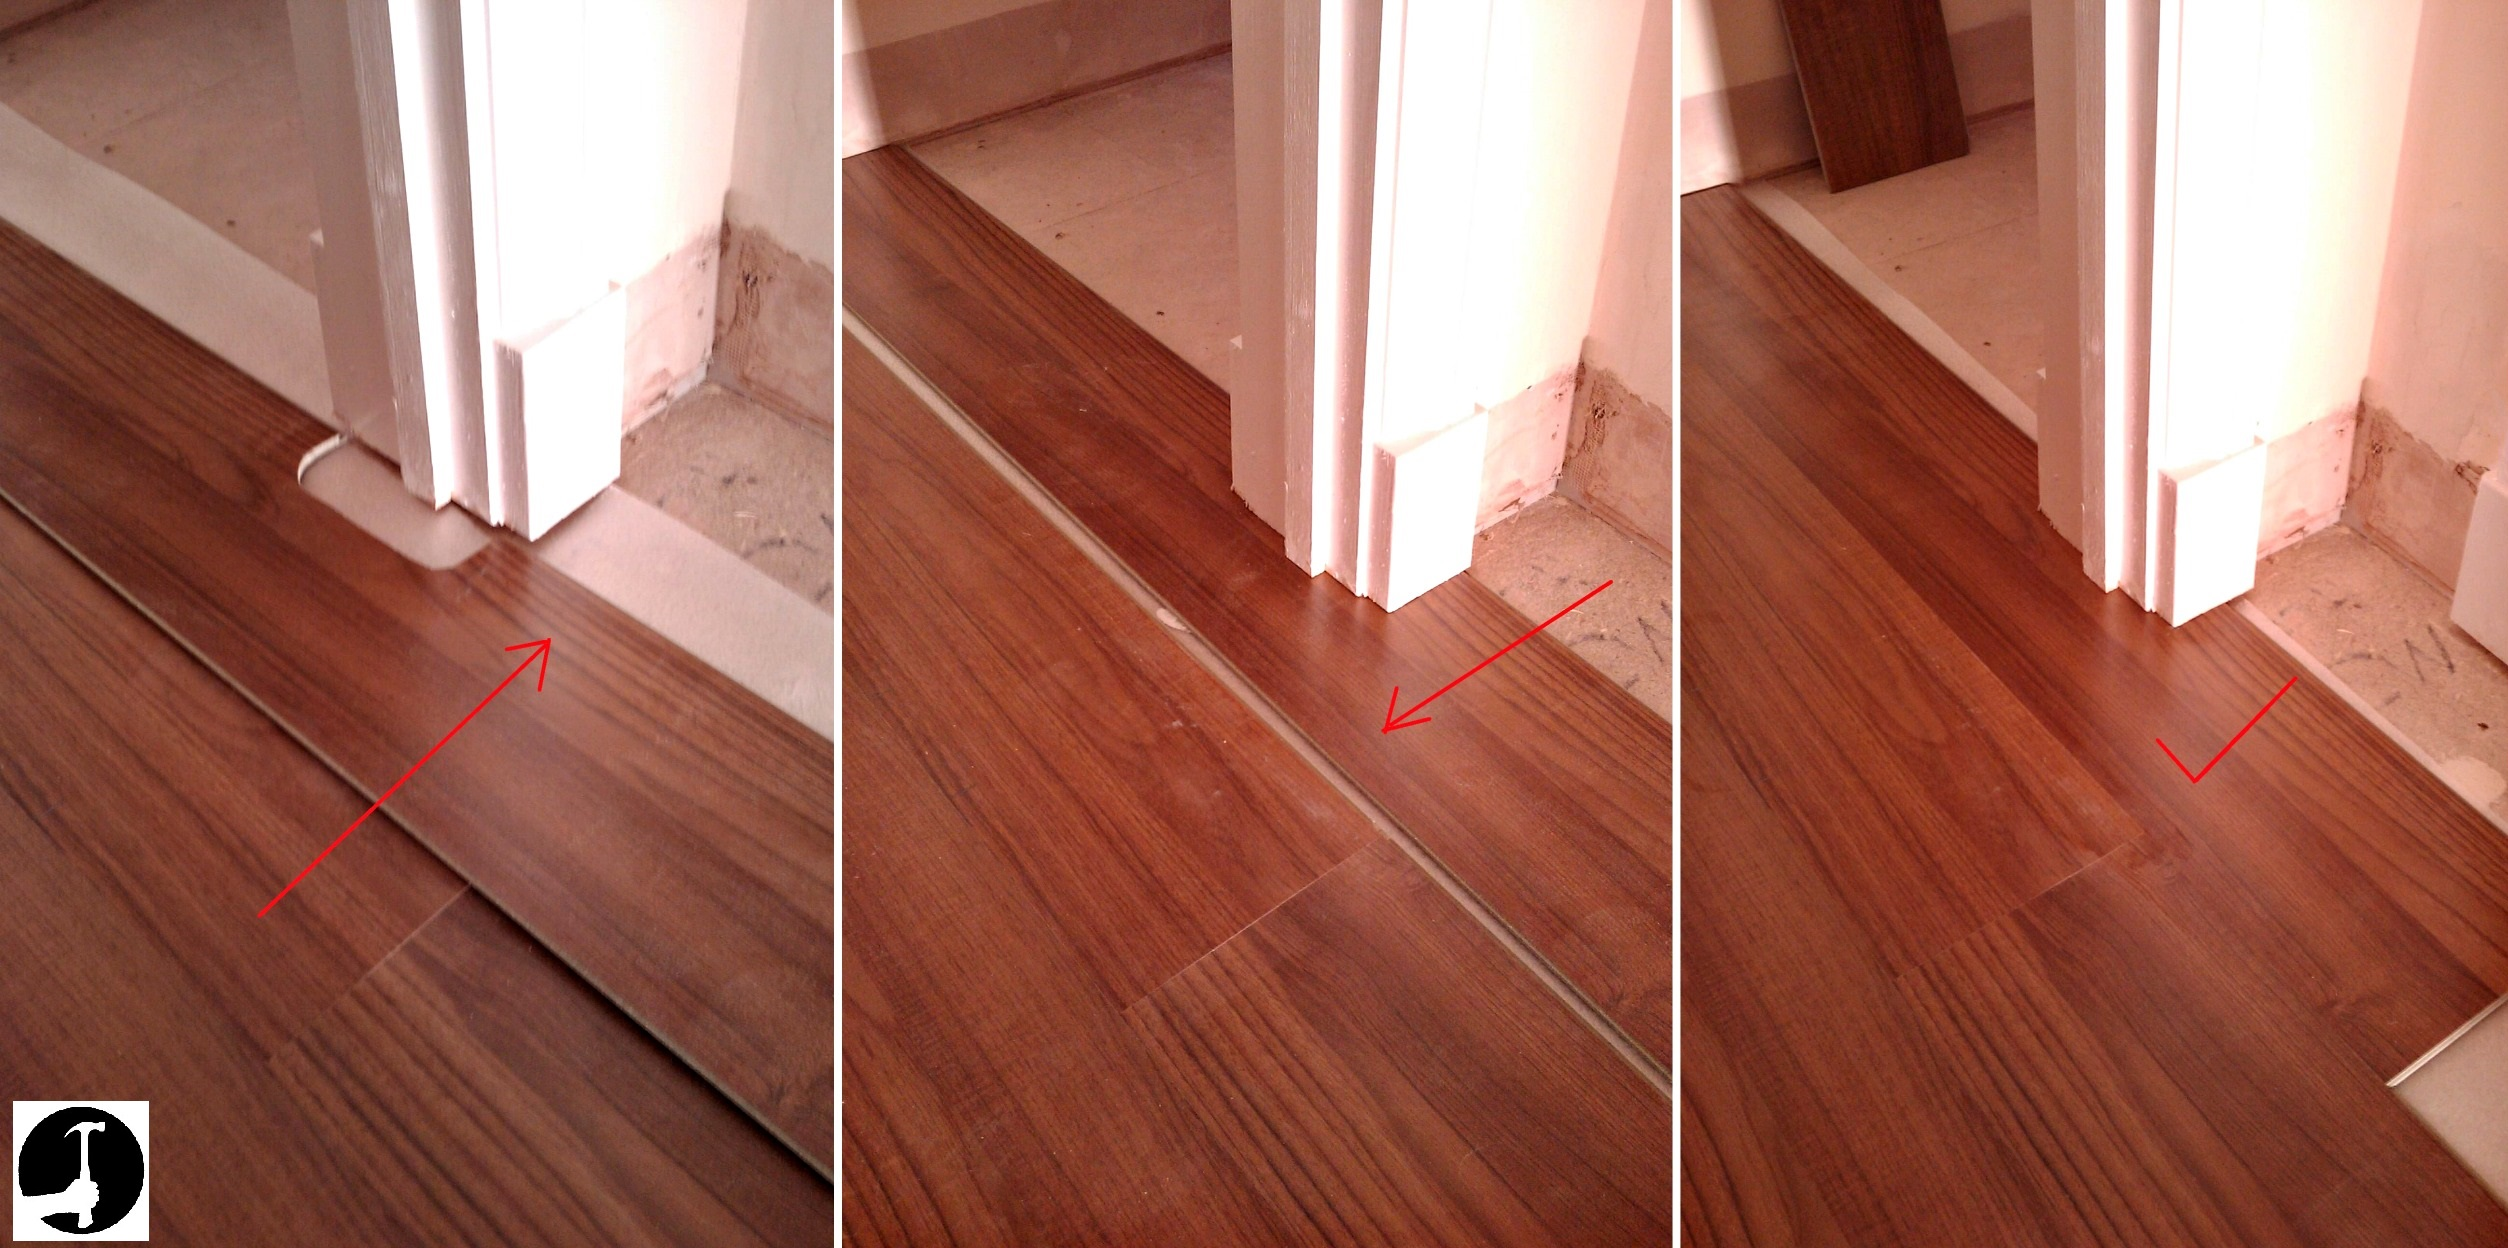 Laying Laminate In A Doorway Can Be Tricky Unless You Know